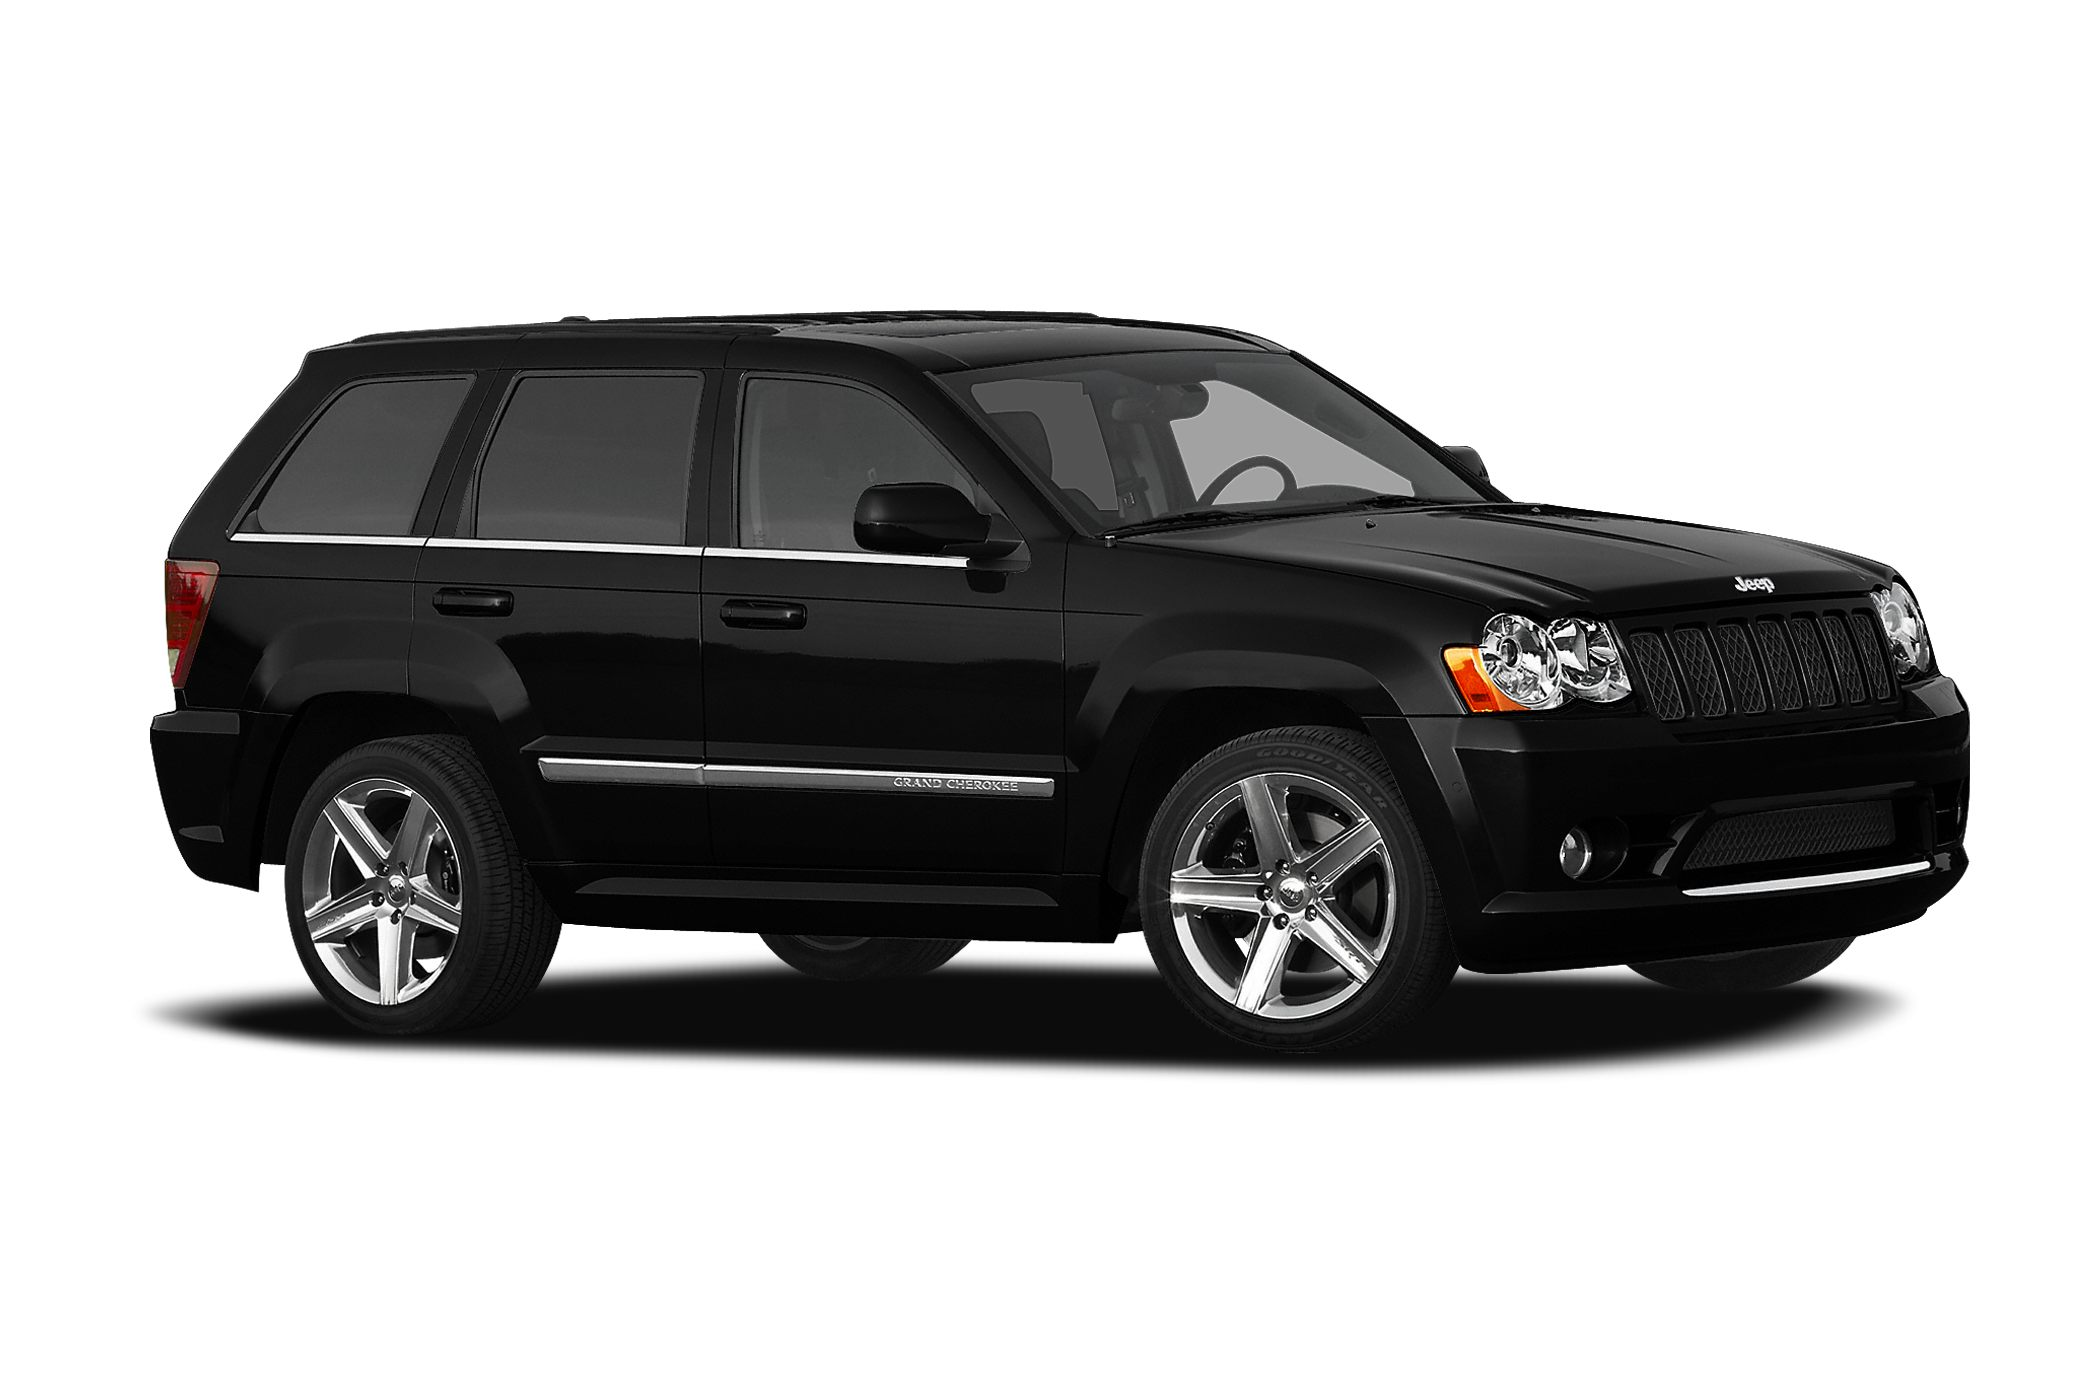 2009 jeep grand cherokee srt8 4dr 4x4 specs and prices